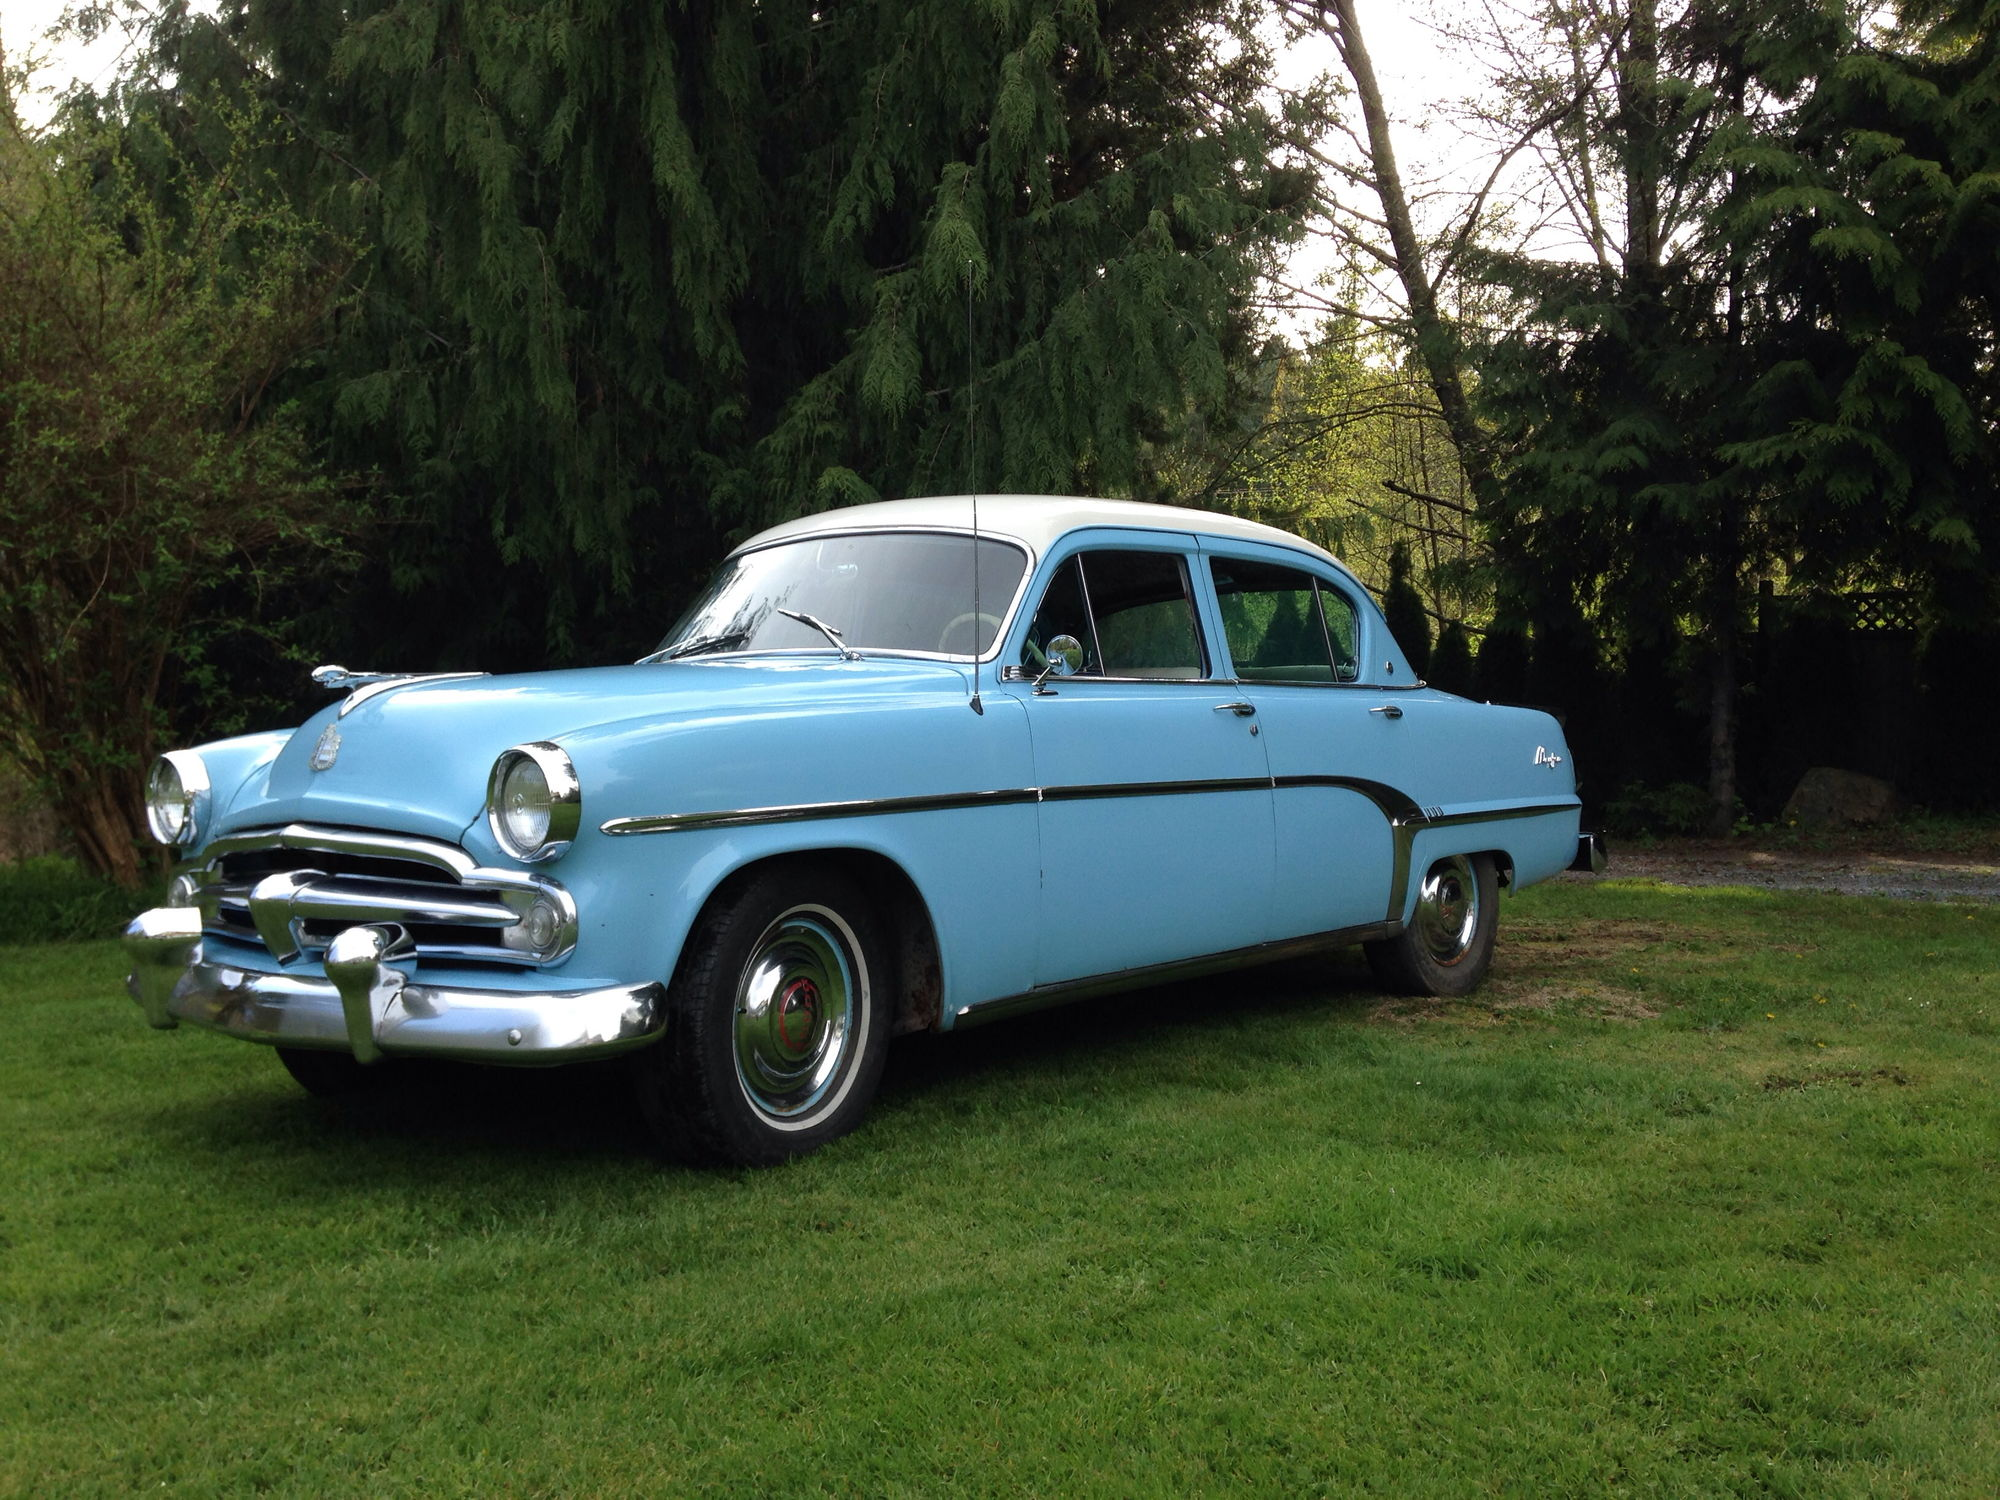 Need Windshield For 1954 Dodge Mayfair Power Wagon Im Looking A New My 4 Door Sedan So It Can Pass Inspection Any Input As To Where I Could Get One Would Be Greatly